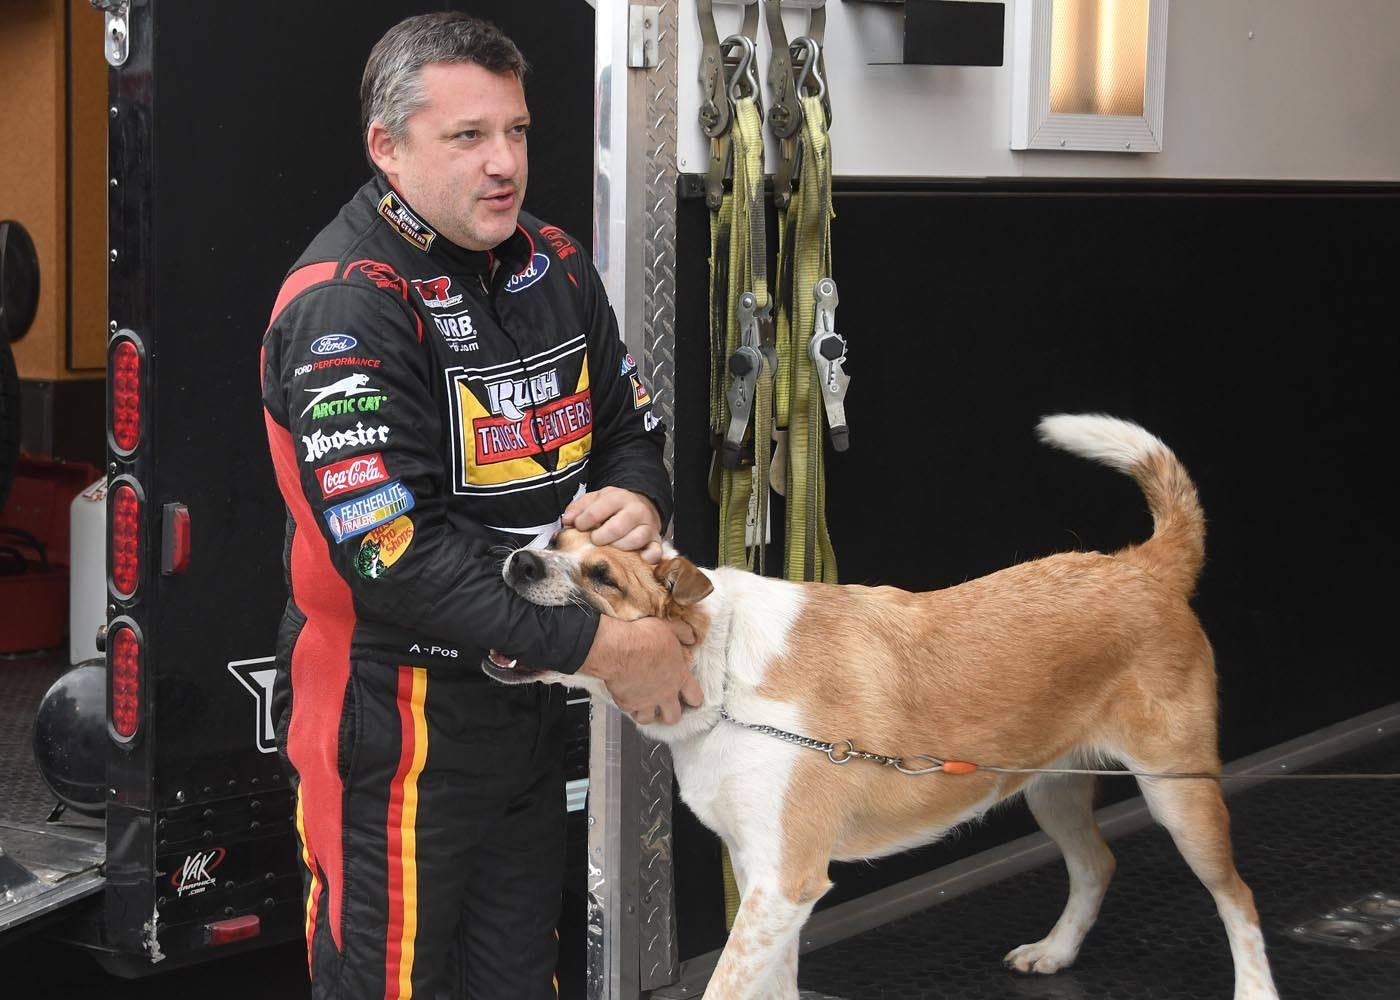 Tony Stewart and his dog pictured at the dirt track